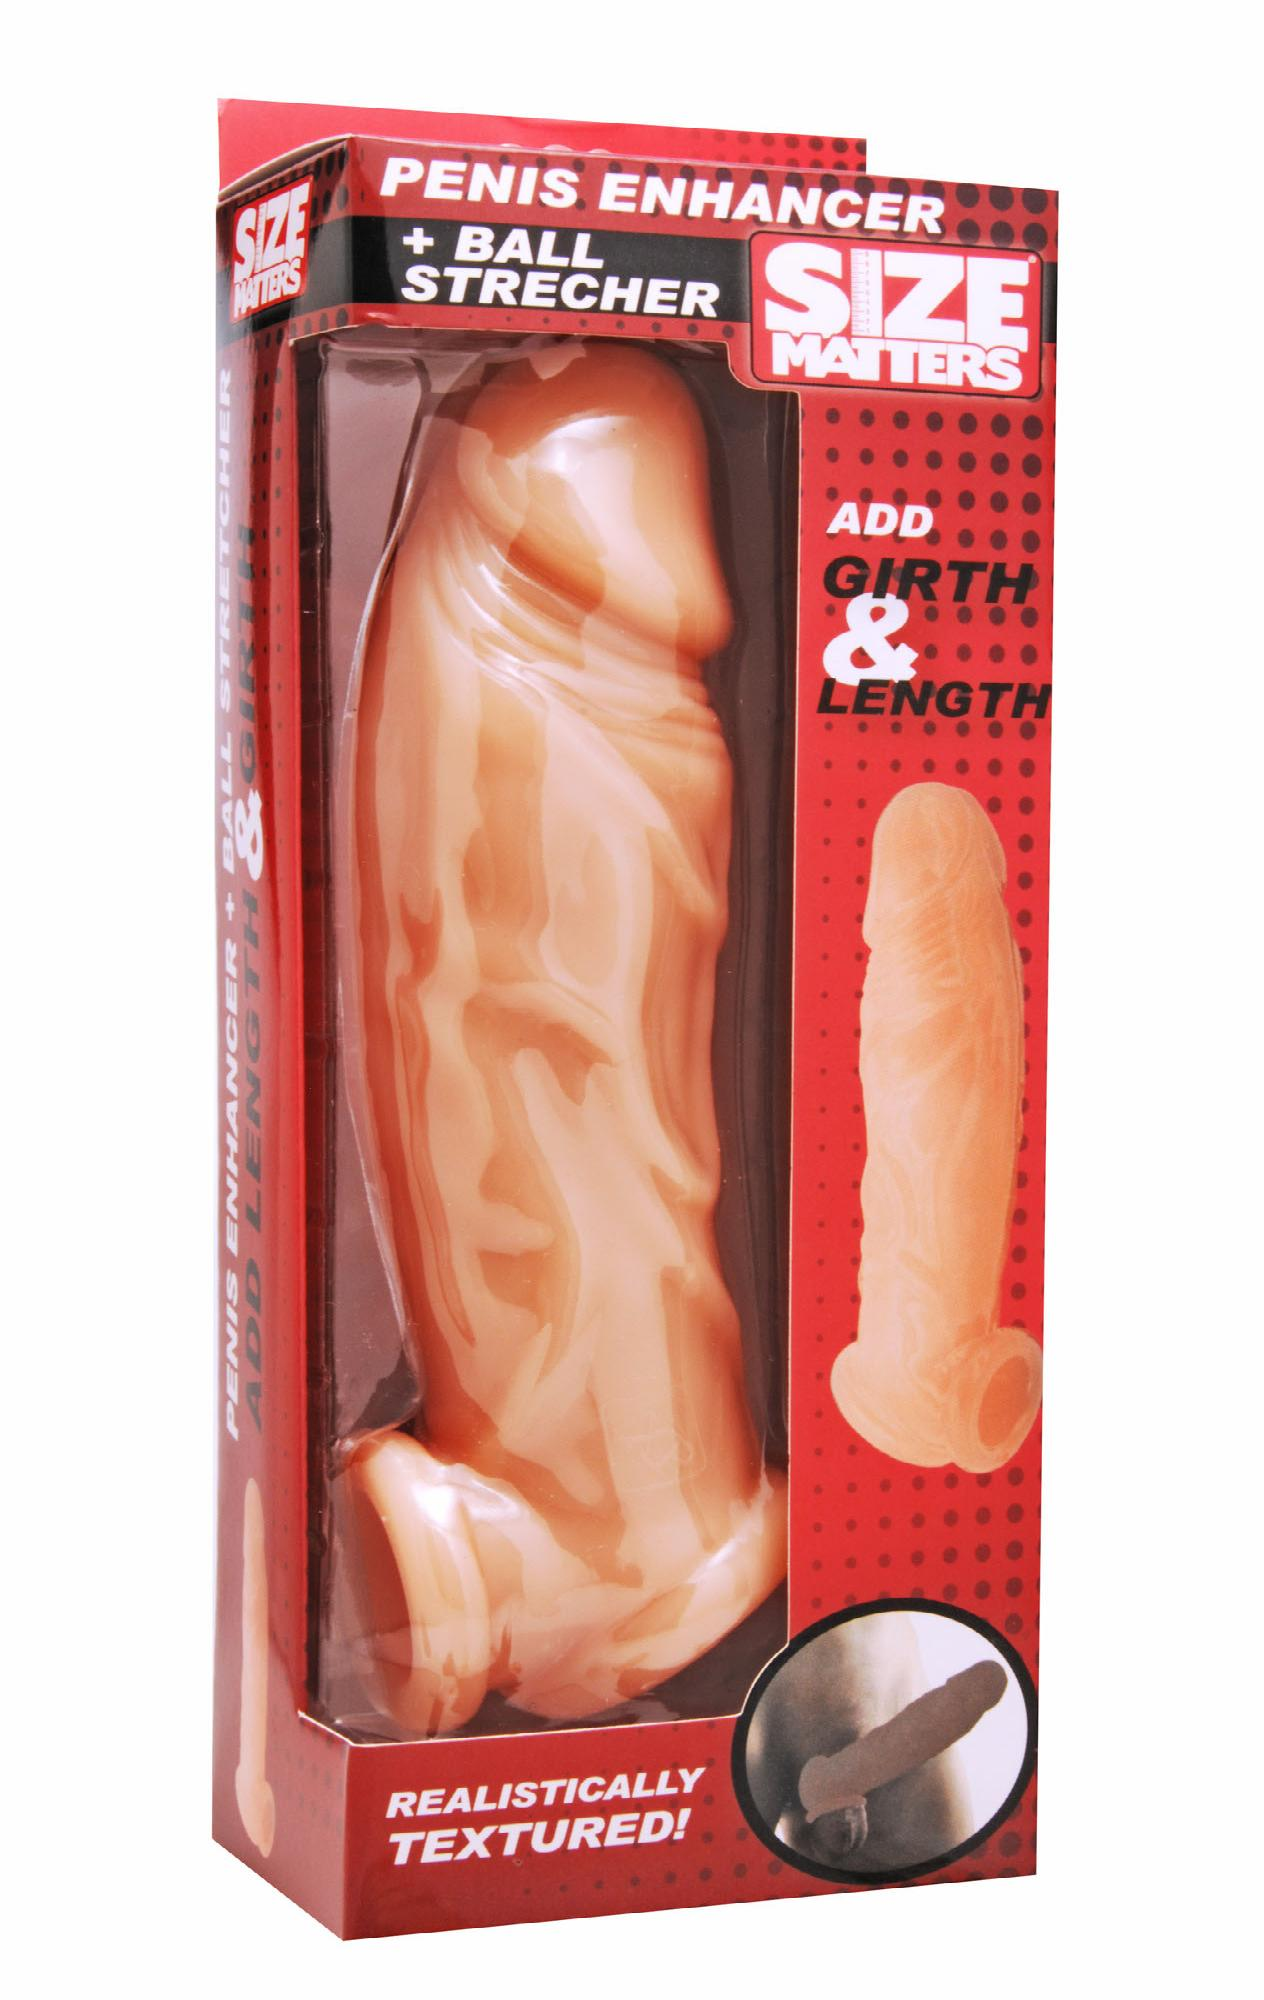 Realistic Flesh Penis Enhancer and Ball Stretcher